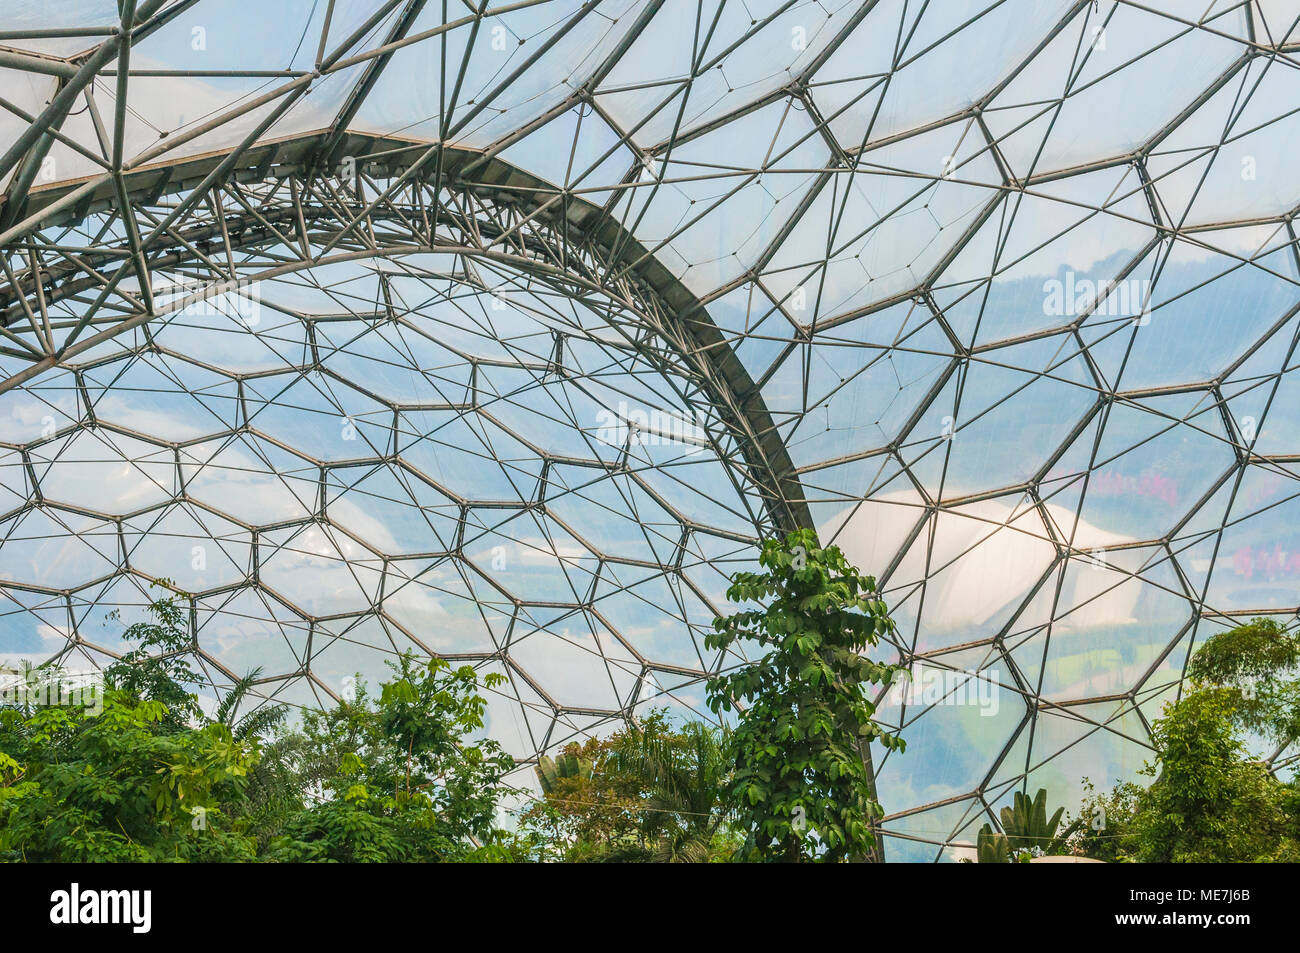 The Eden Project near St Austell, Cornwall PHILLIP ROBERTS - Stock Image